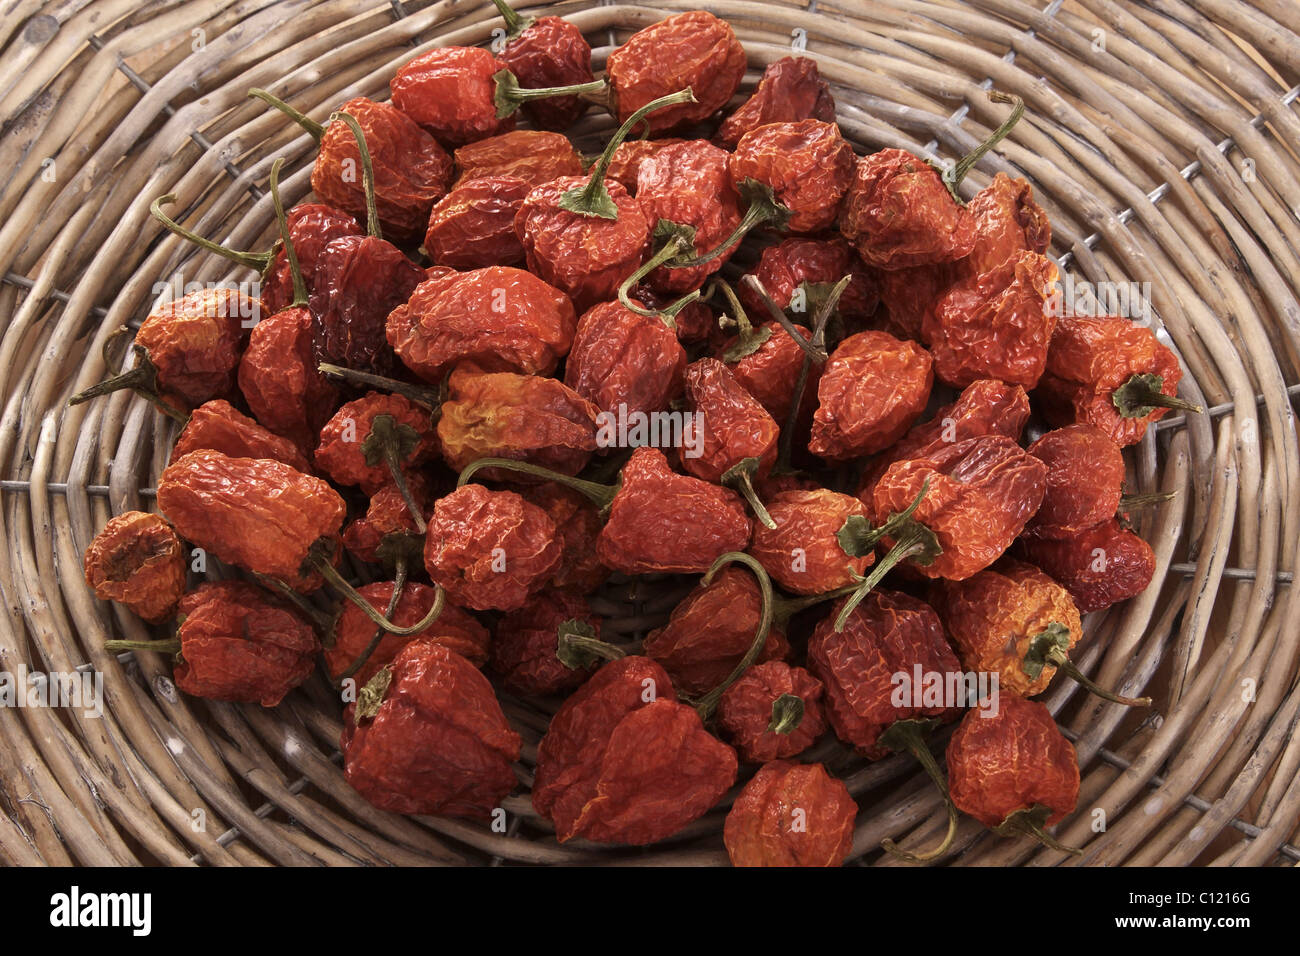 Dried mini peppers (capsicum) in a woven basket - Stock Image